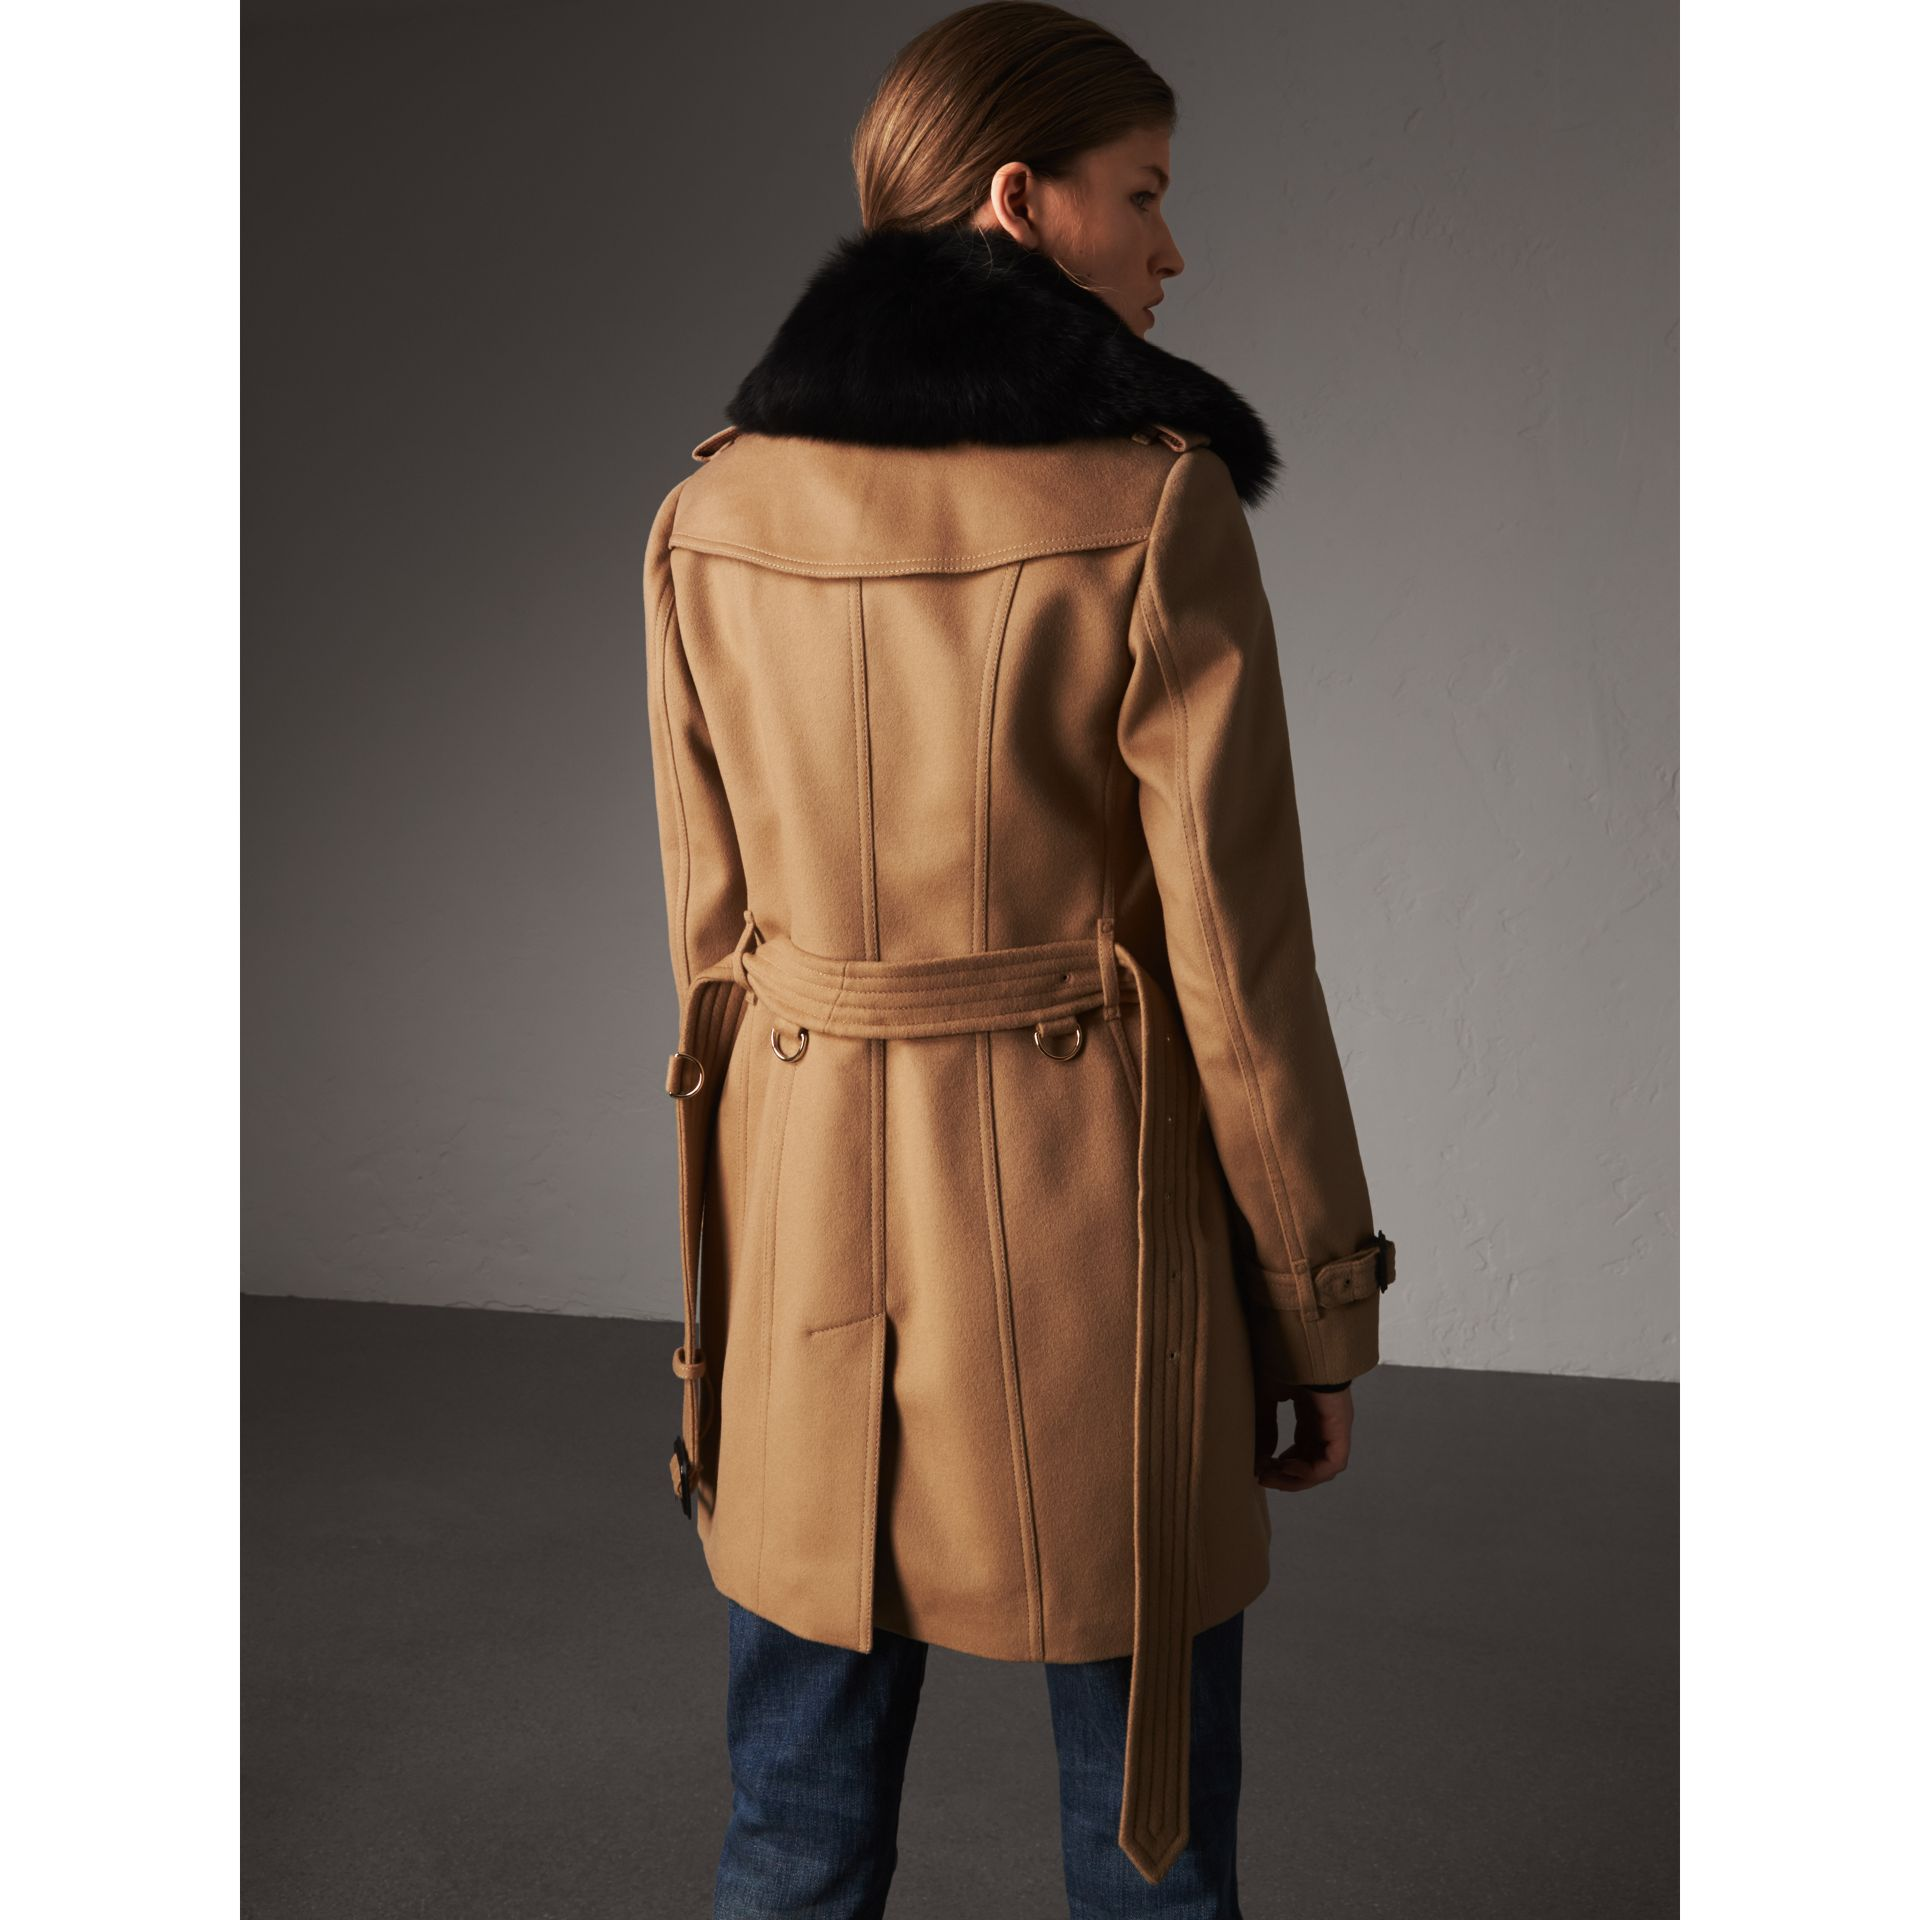 Wool Cashmere Trench Coat with Fur Collar in Camel - Women | Burberry - gallery image 3